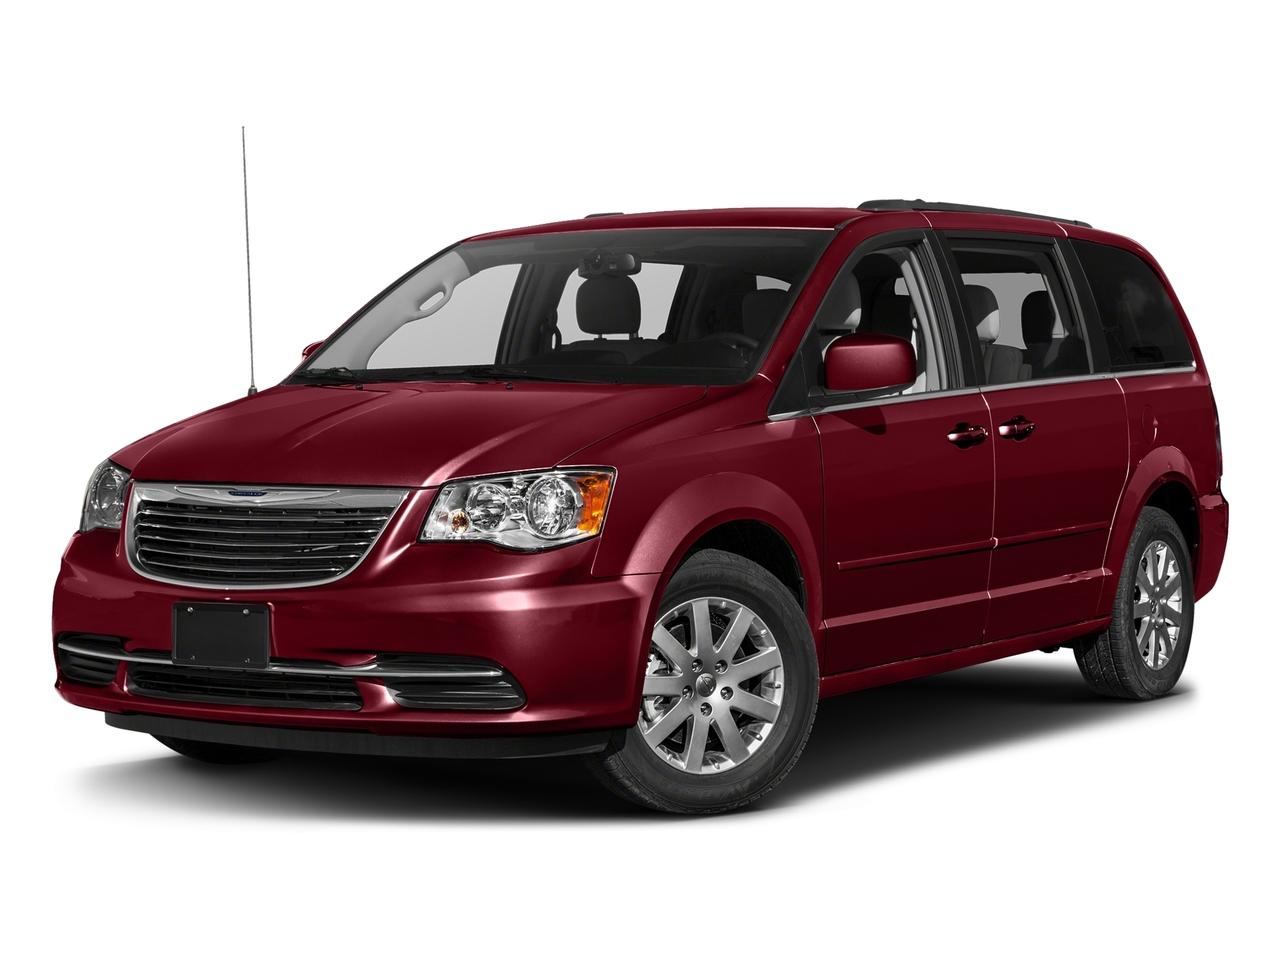 2016 Chrysler Town & Country Vehicle Photo in Plainfield, IL 60586